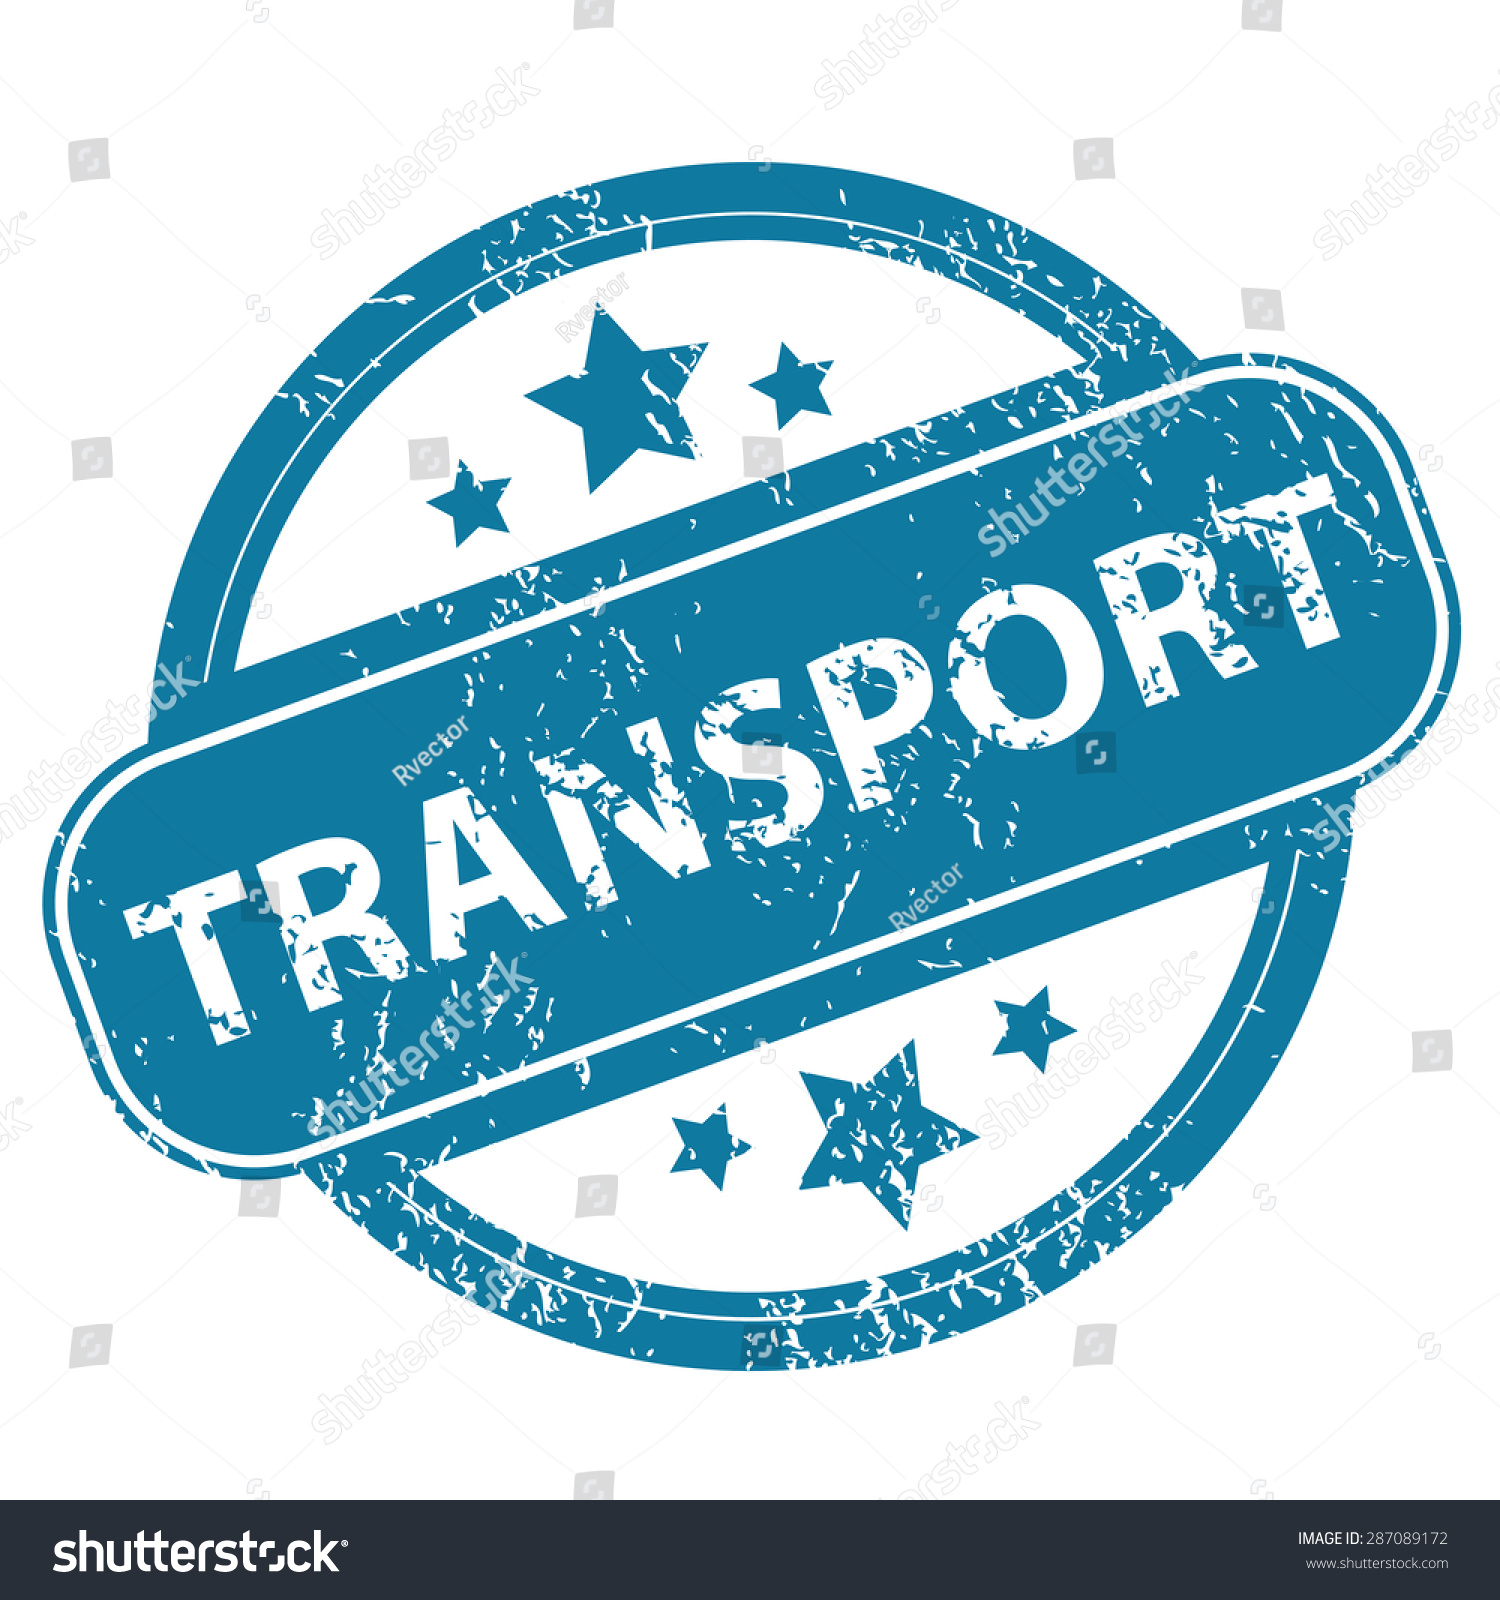 Round Rubber Stamp Word Transport Stars Stock Illustration